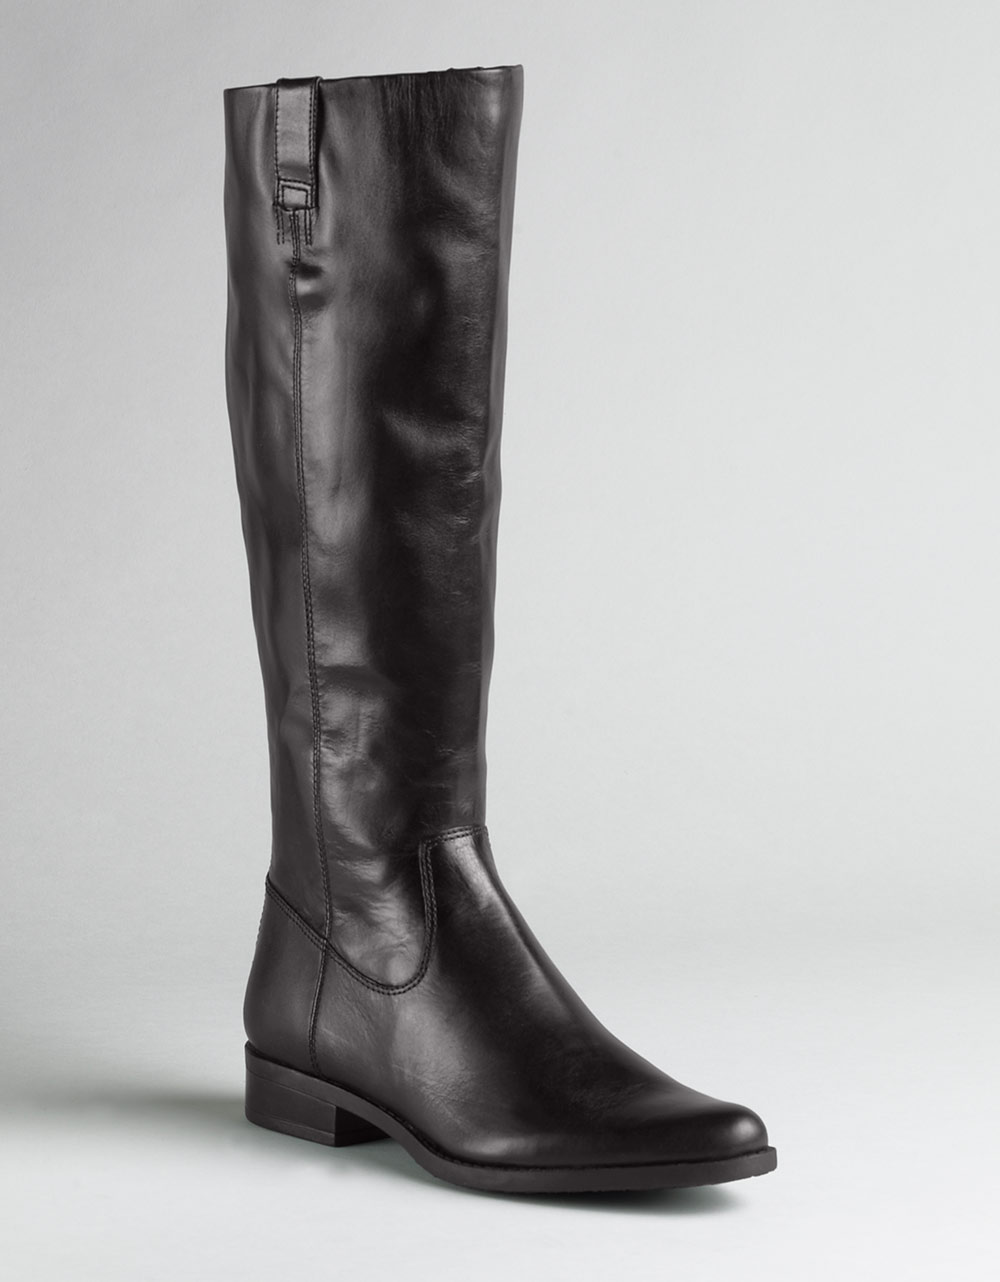 Calvin Klein Tamryn Leather Boots In Brown Brown Leather